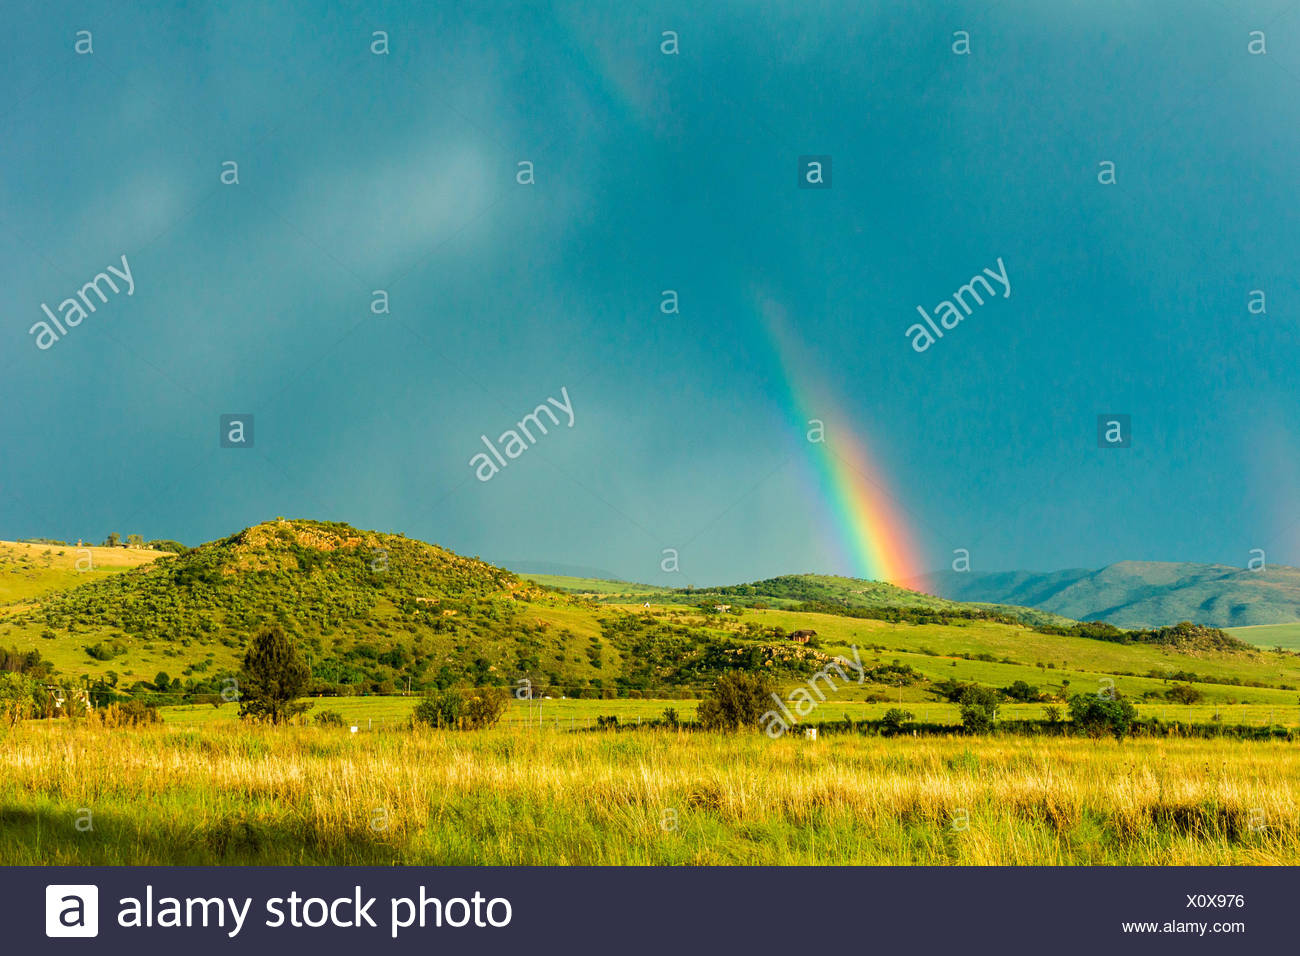 Countryside, Monaghan Farm, Lanseria, Johannesburg, Province of Gauteng, Republic of South Africa, Africa. Rainbow after storm. - Stock Image